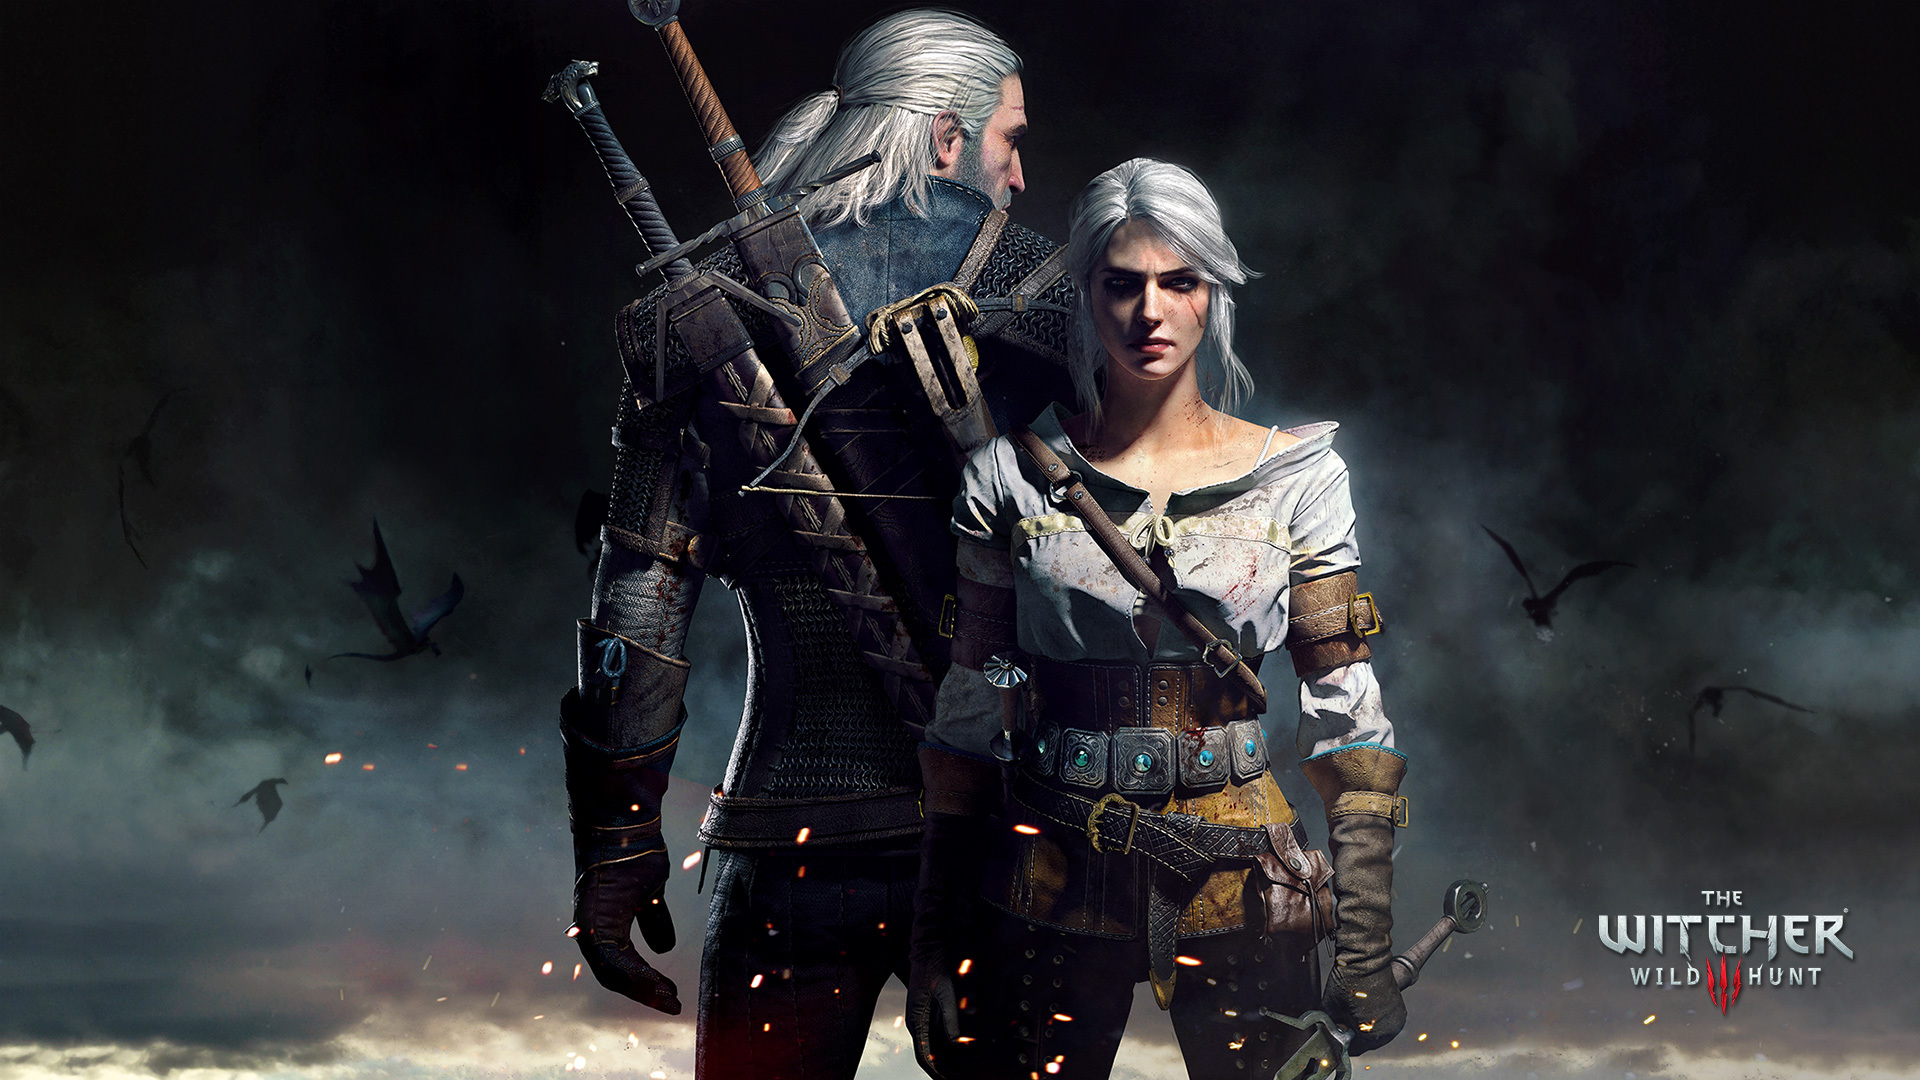 The Witcher 3 Wild Hunt For Desktop Background